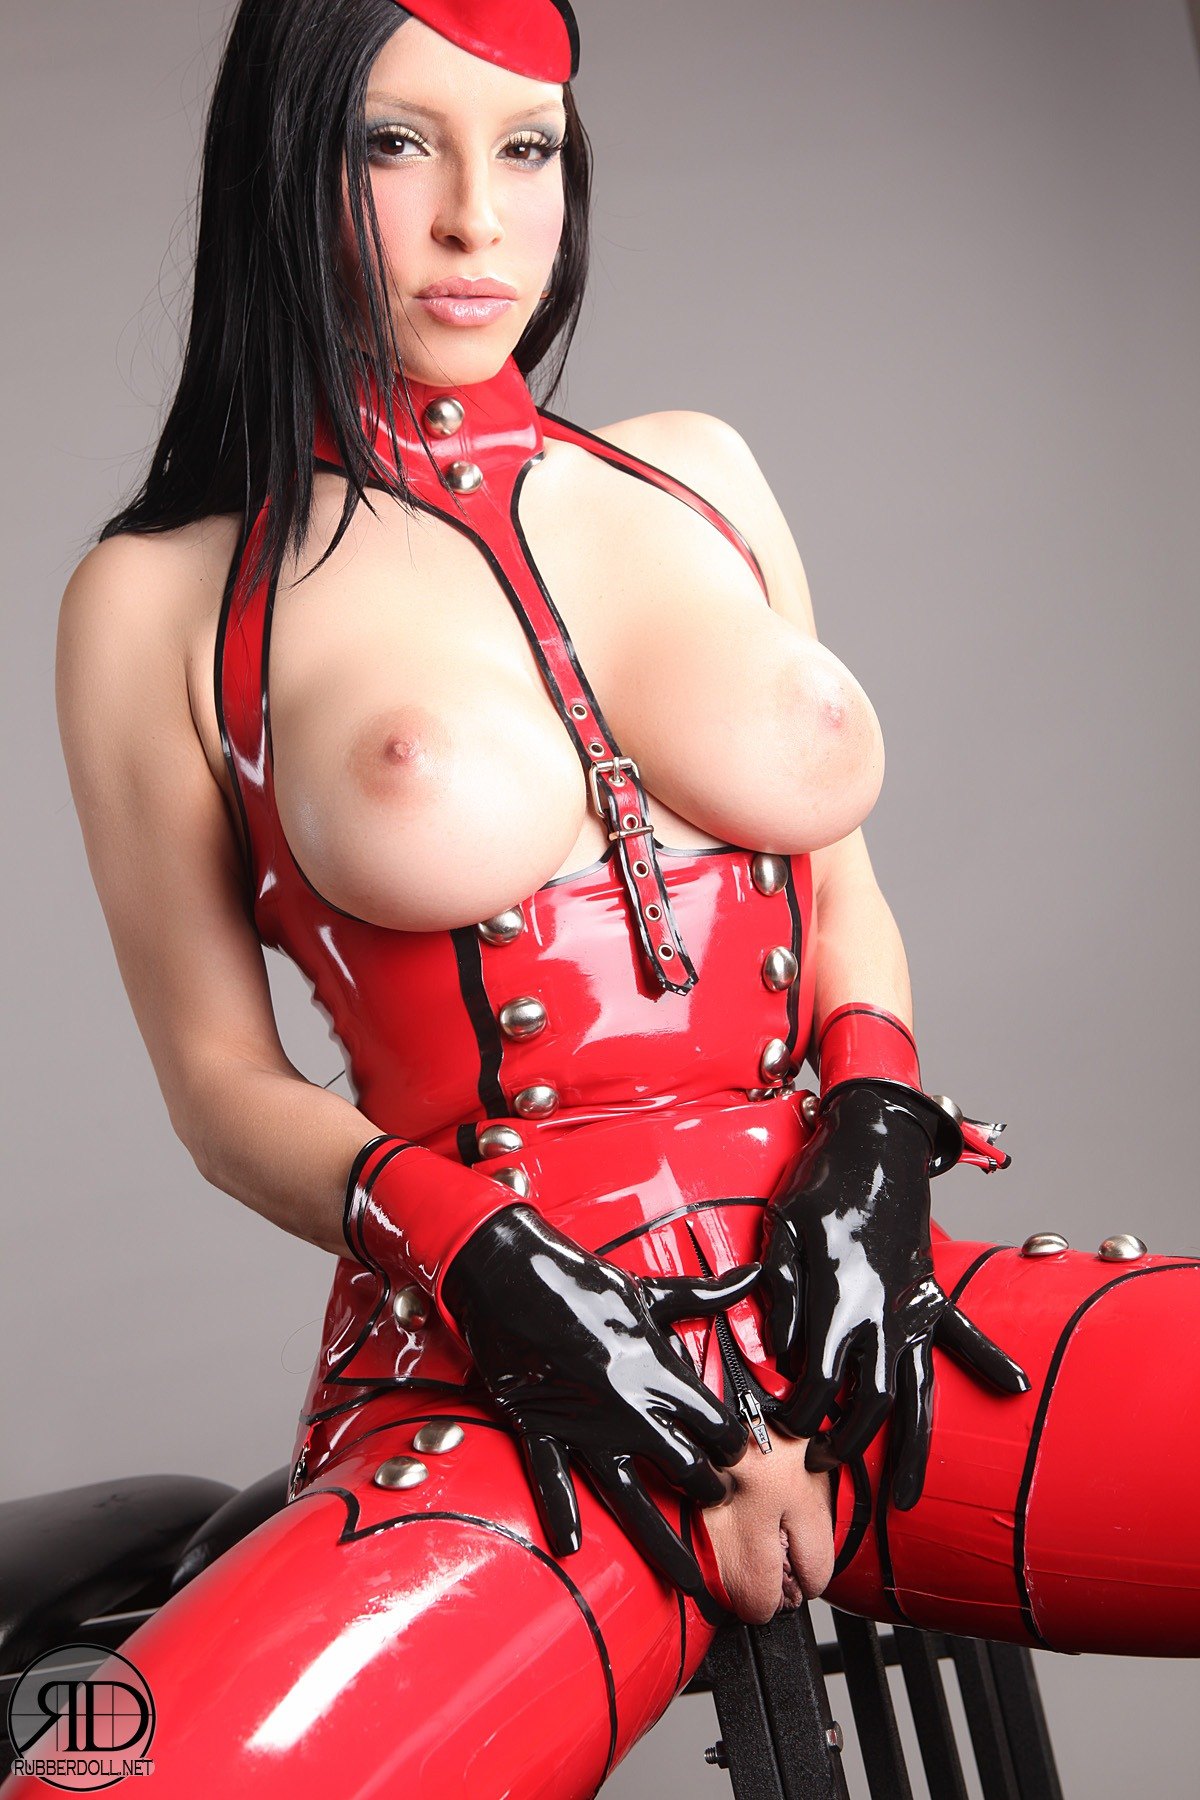 sharing his wife pussy with a guy from craigslist #fetish #latex #rubber #shiny #uniform